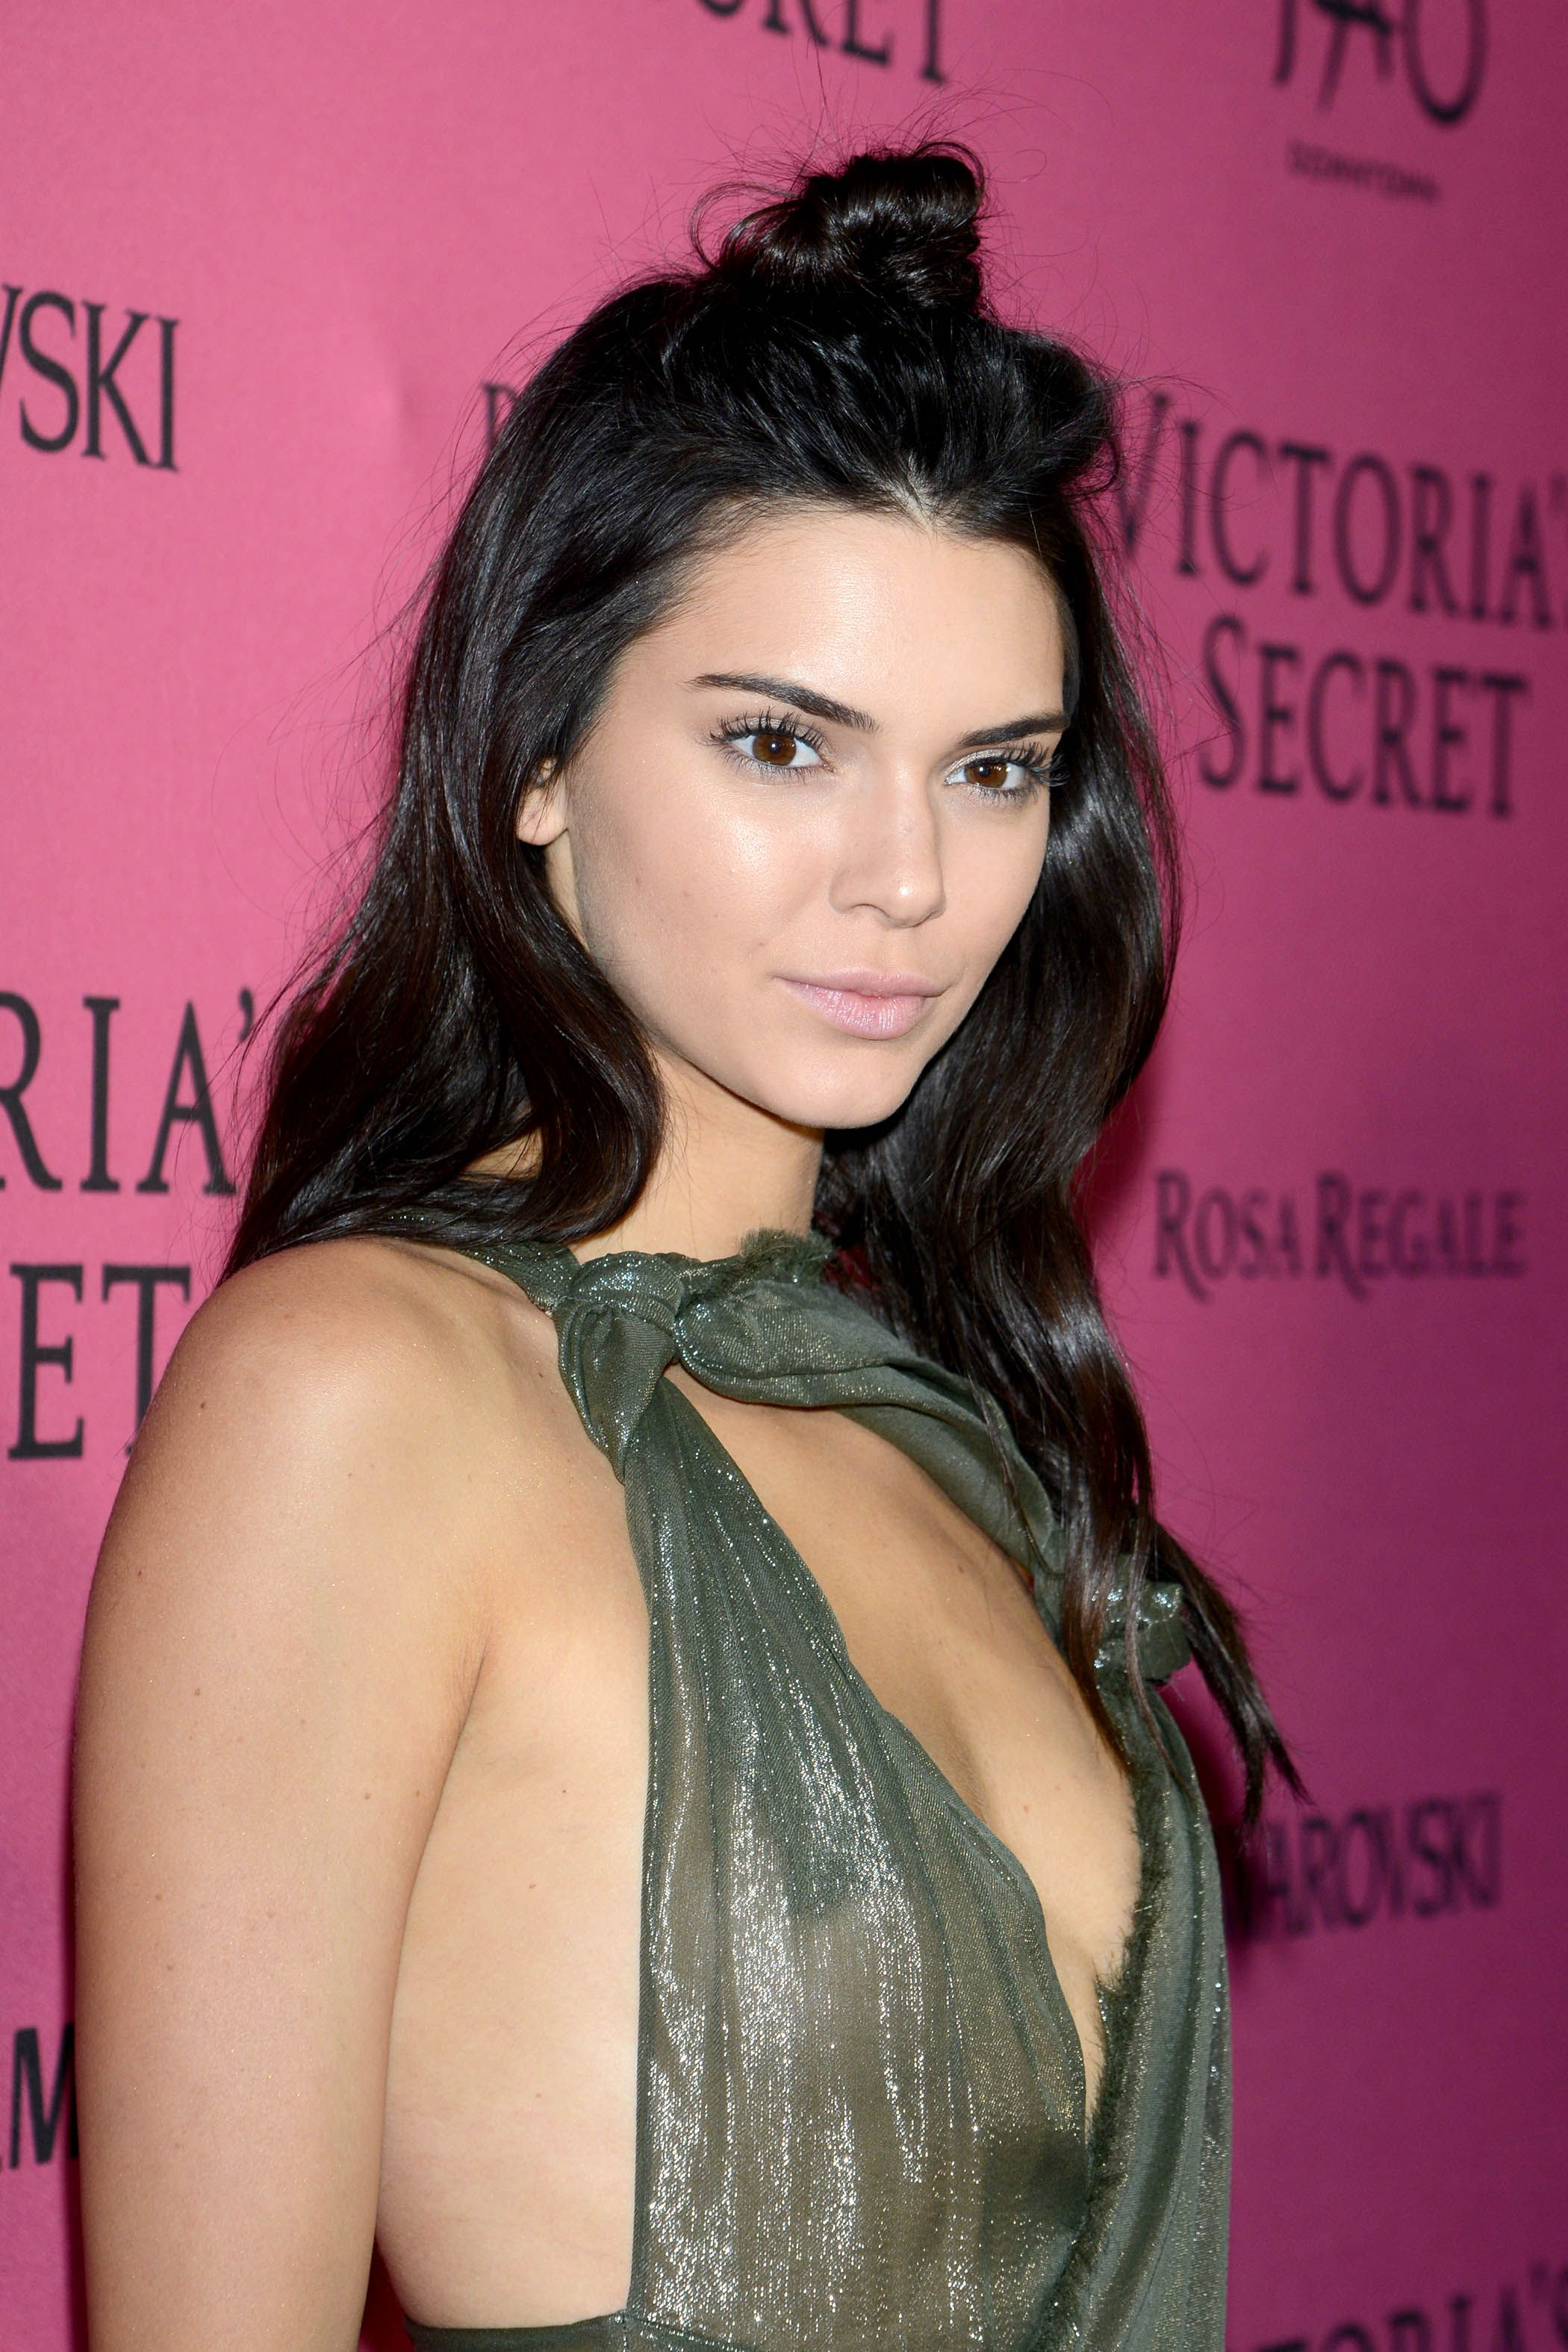 nude pics of Kendall Jenner